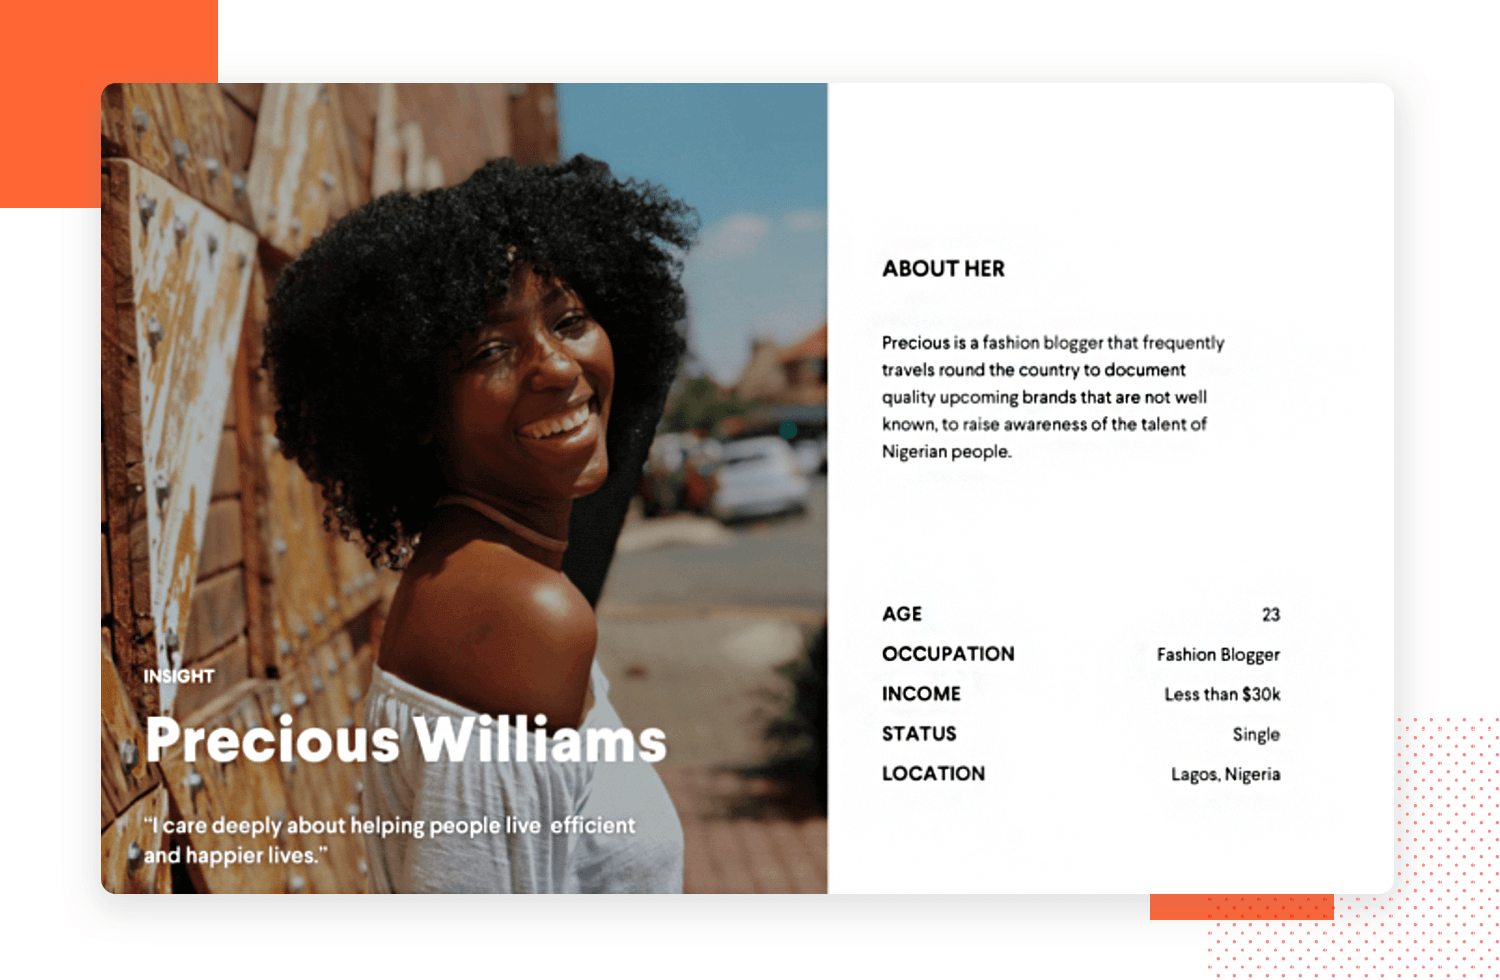 User persona template examples - fashion blogger